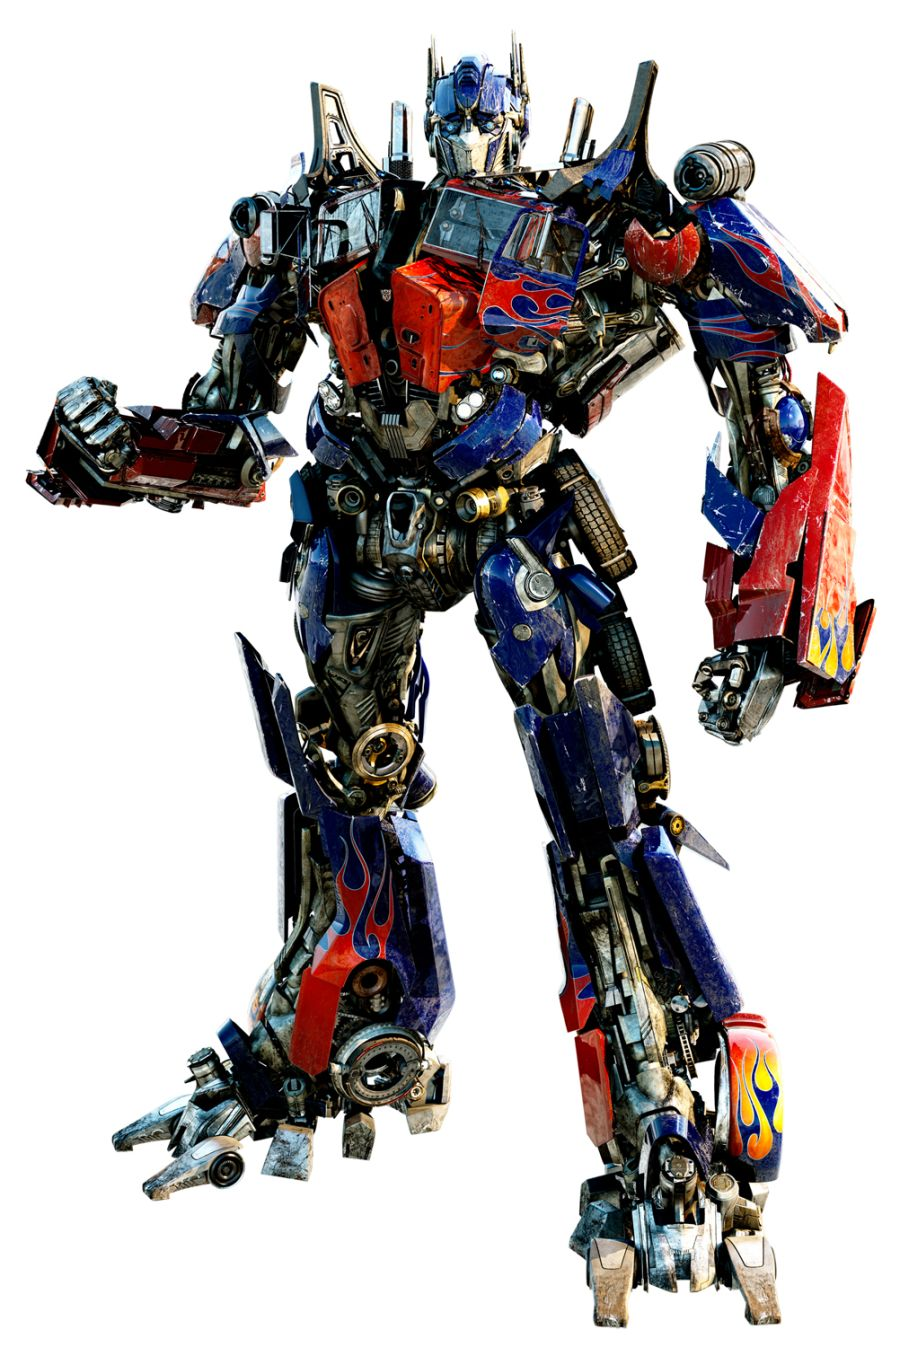 optimus prime | the league of utter disaster, chaos, and insanity